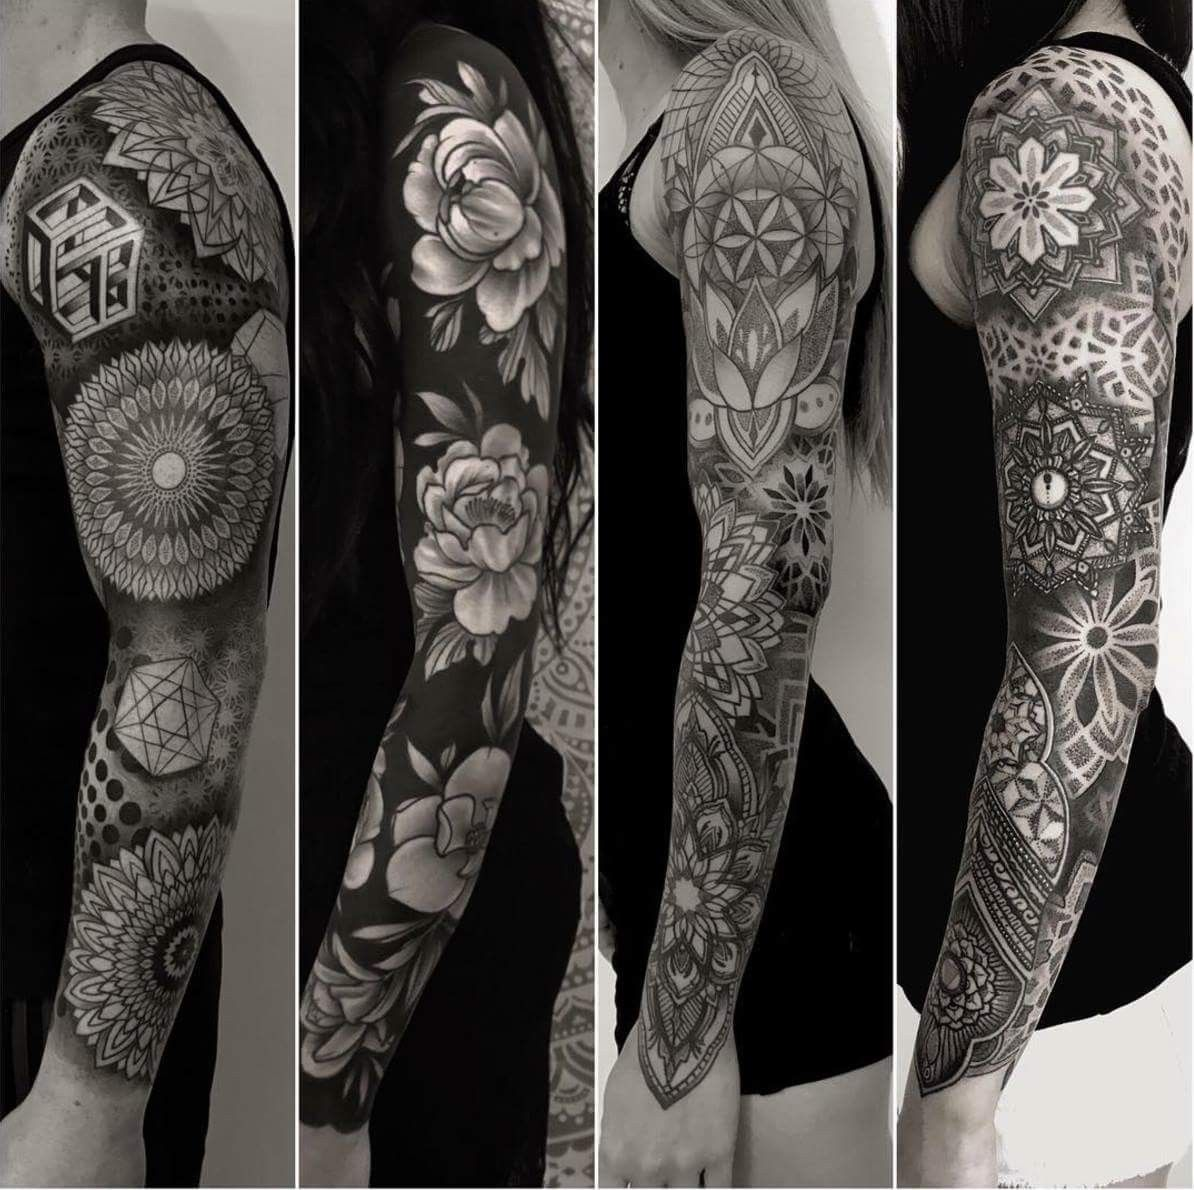 ff9e968e8b168 Nice sleeves by Sean Hall #inkoftheday #sleeve #tattoosleeve #geometric  #flowers #blackwork #tattoo #tattoodotcom